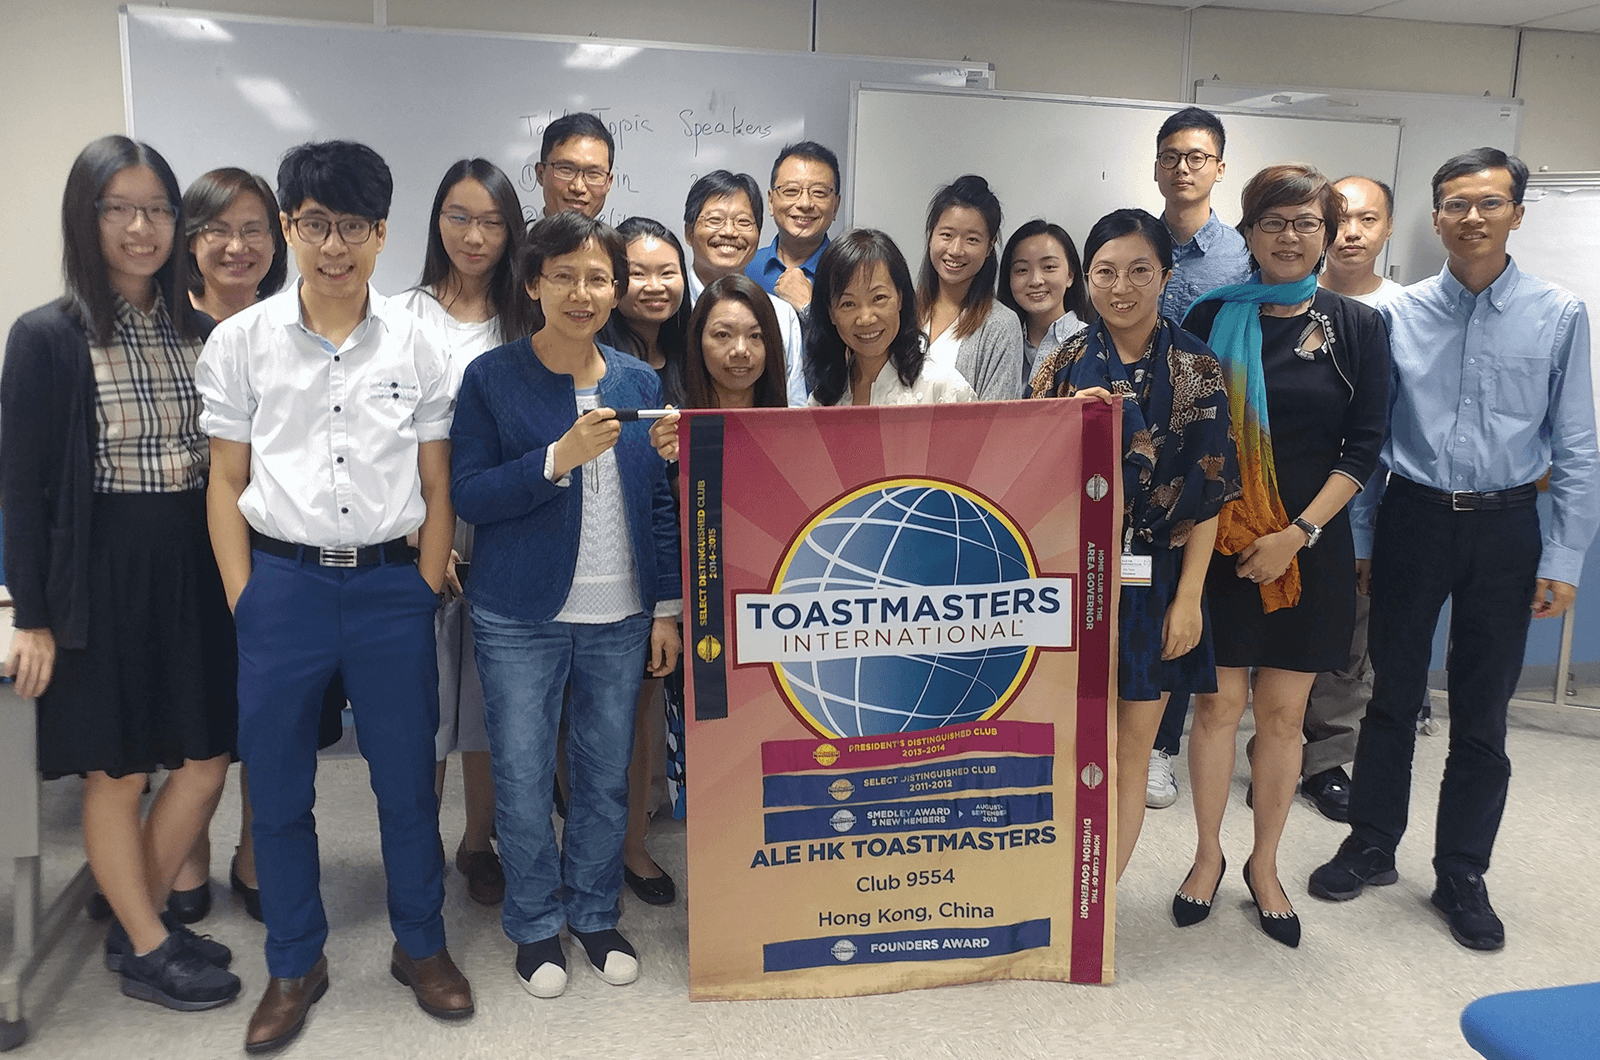 Group of Toastmasters members standing with club banner